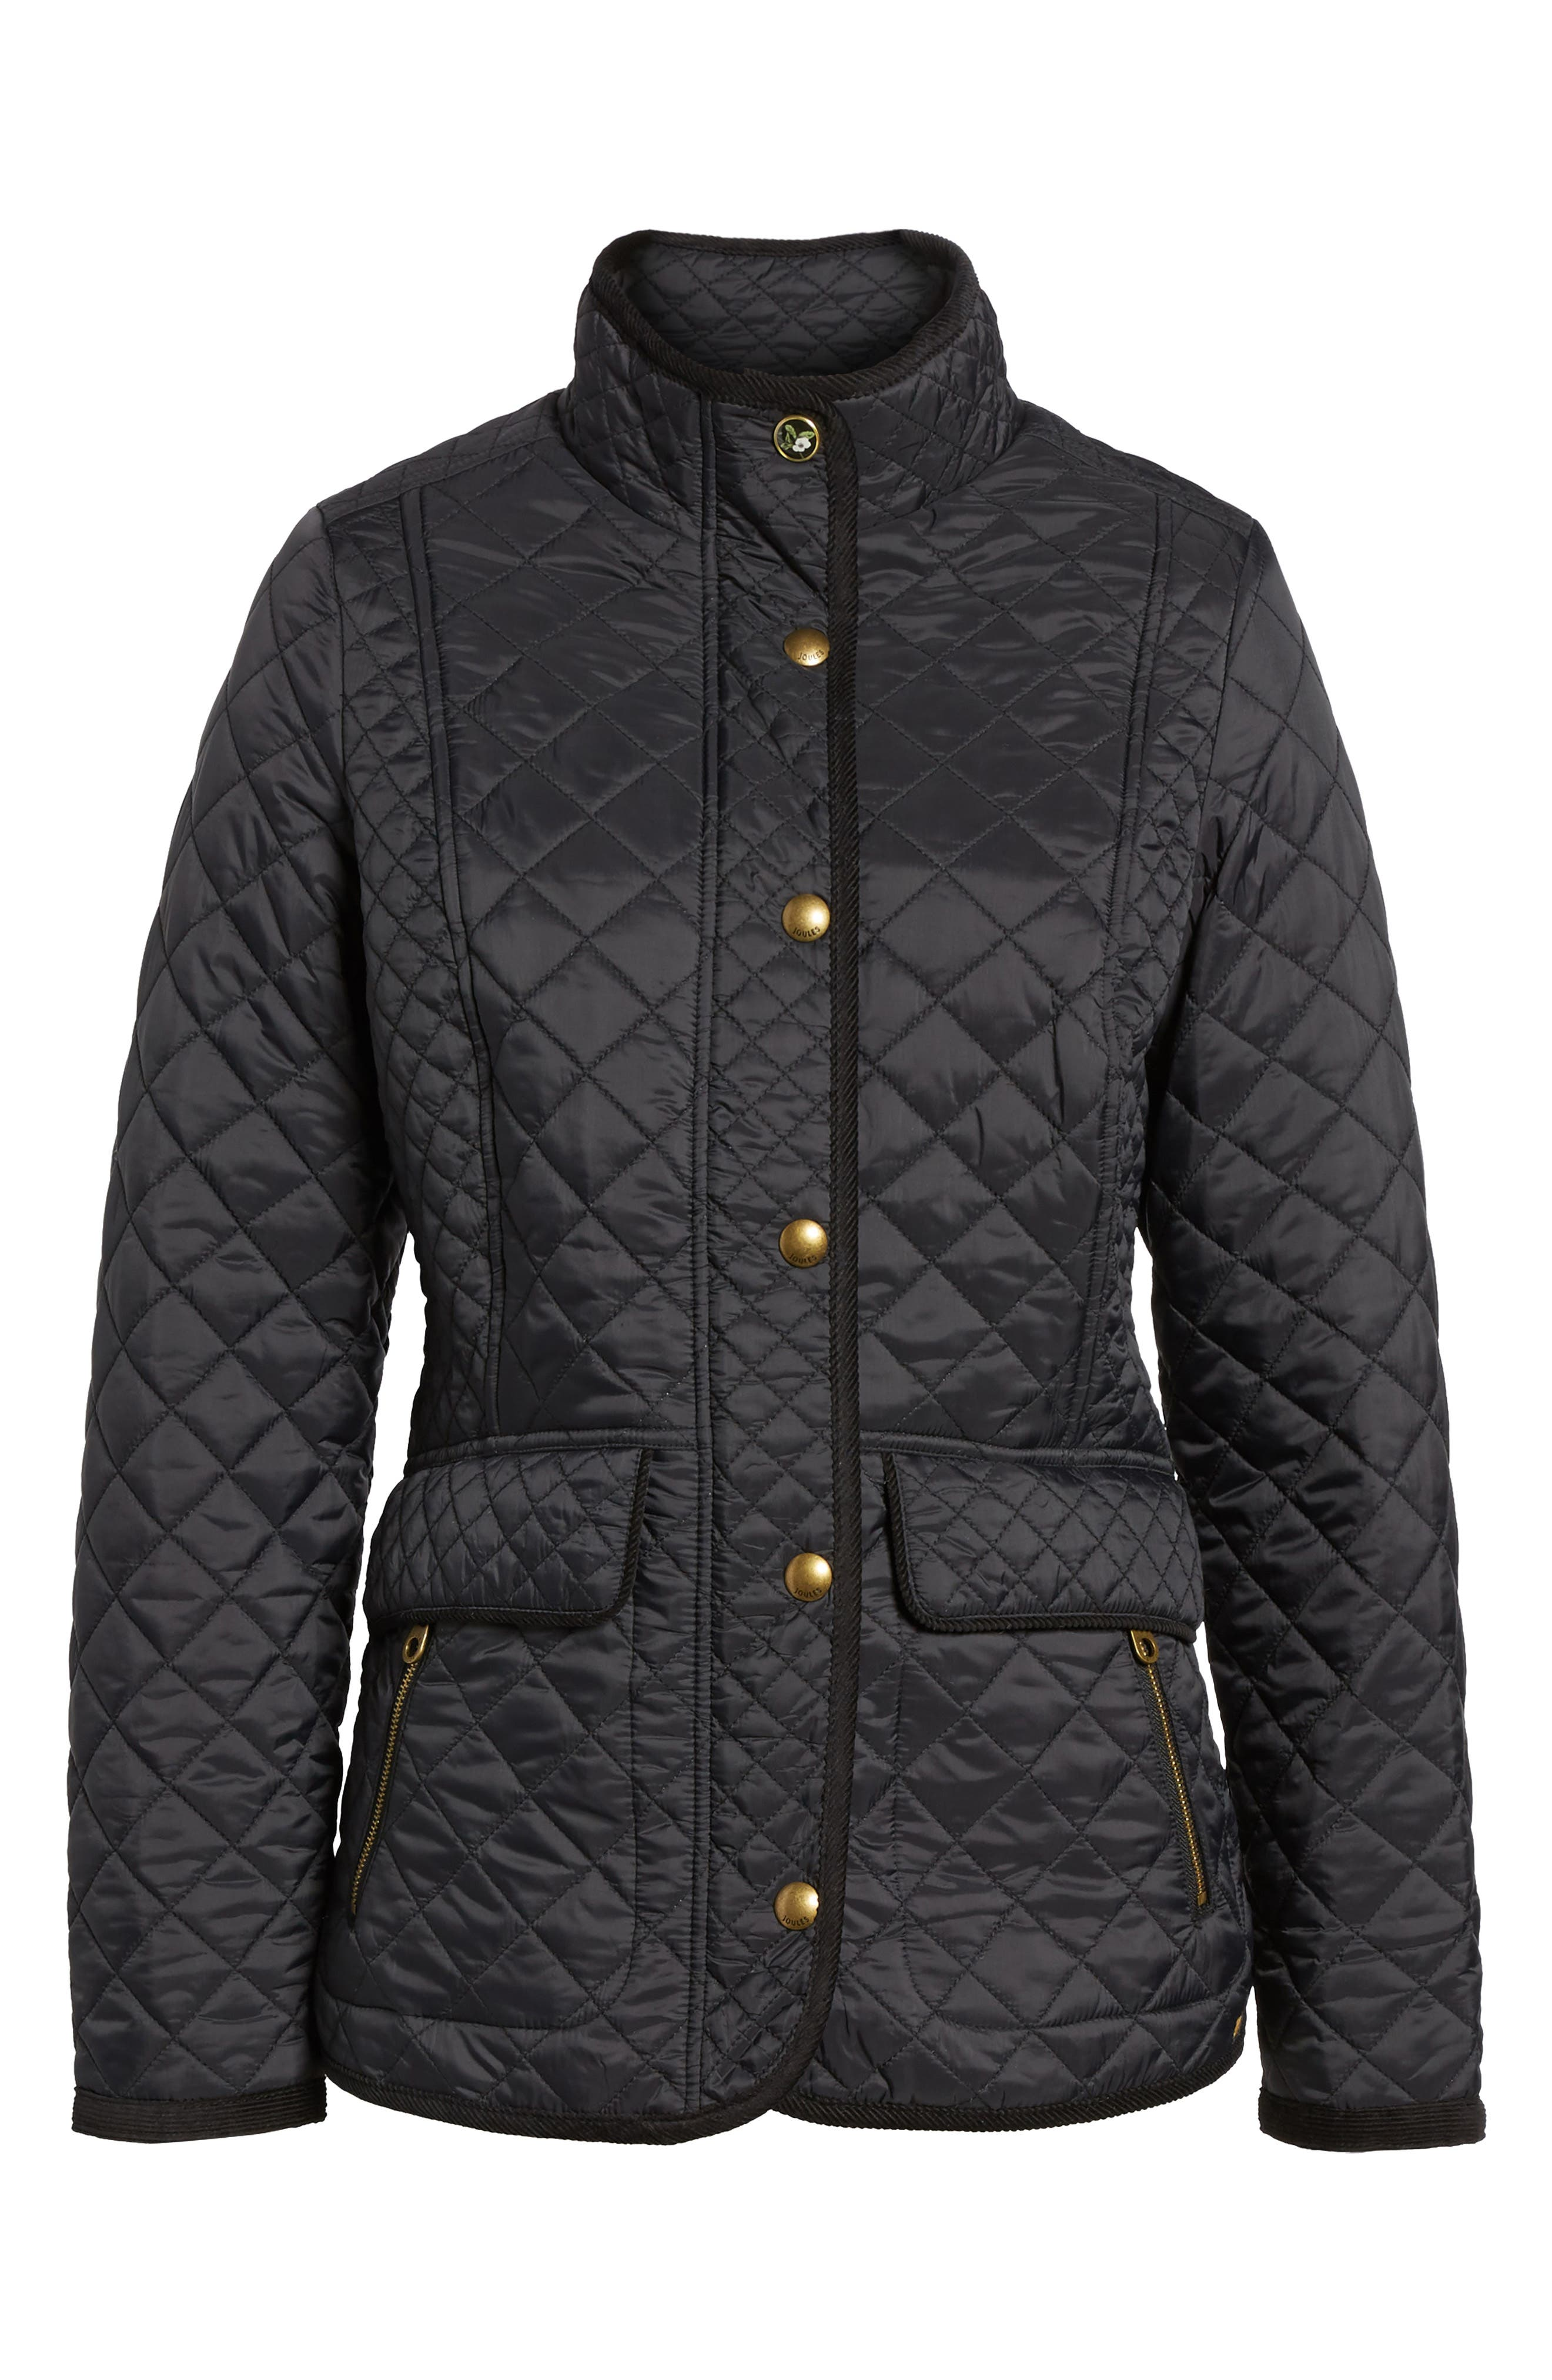 Warm Welcome Quilted Jacket,                         Main,                         color, Black